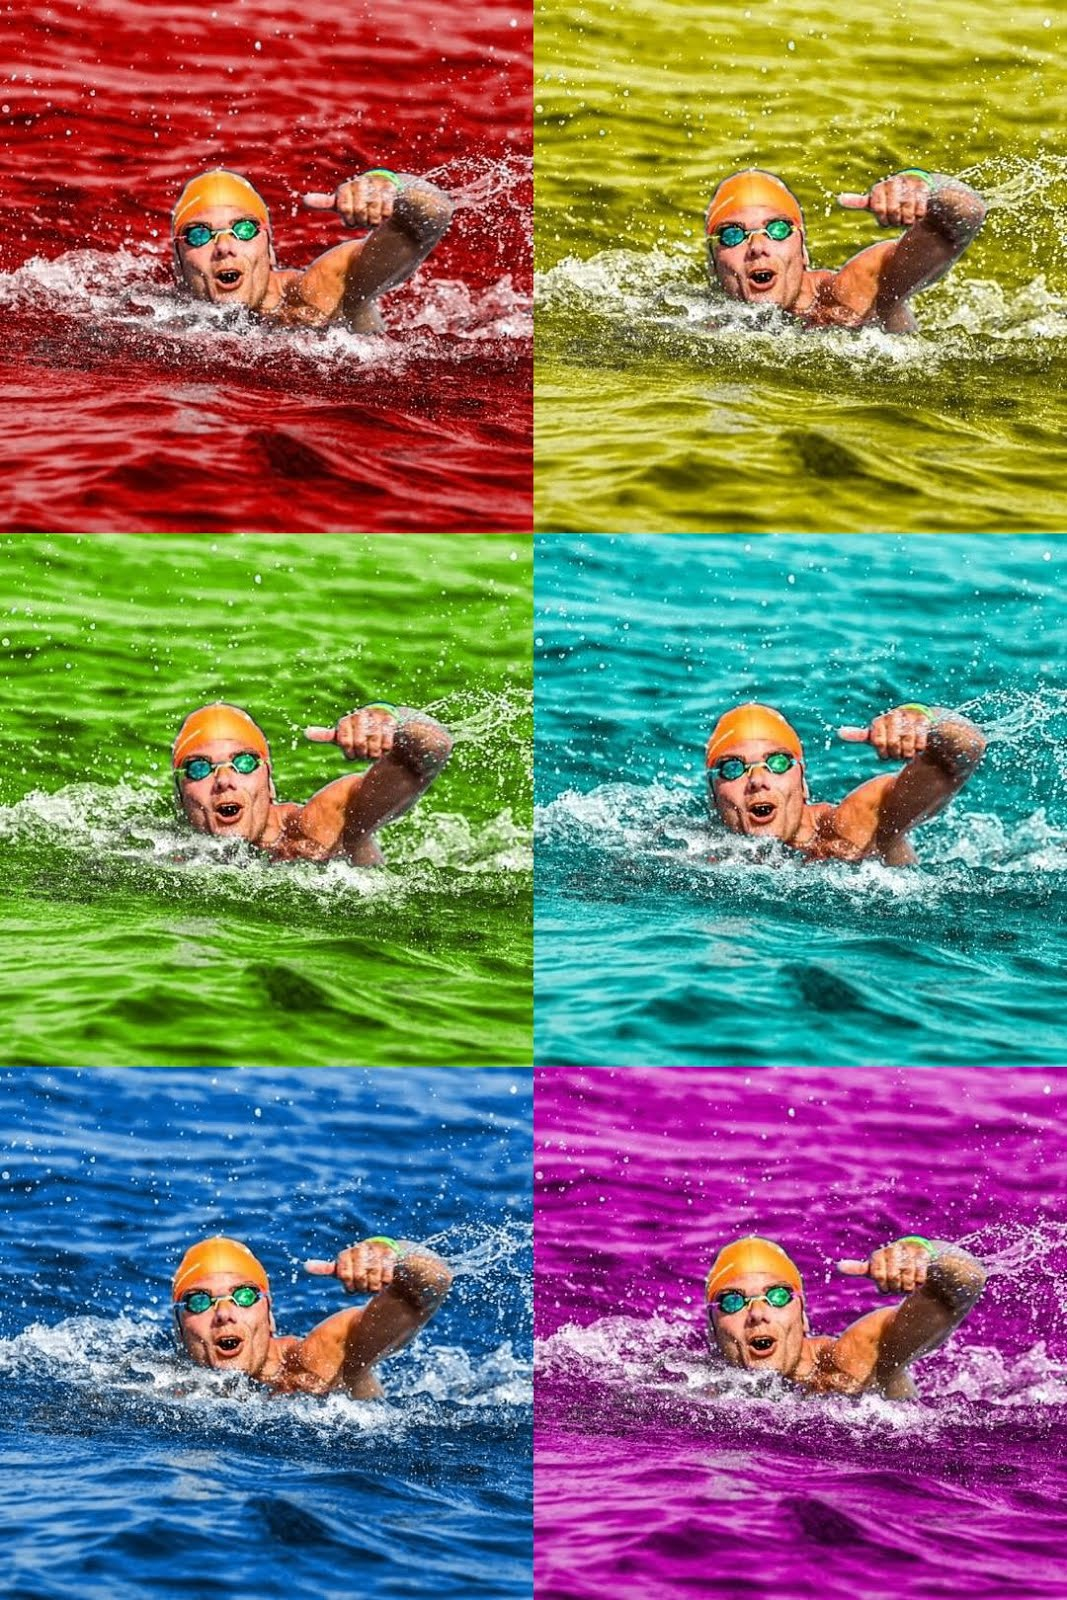 Color Slicing Using Hsv Color Space Image Processing